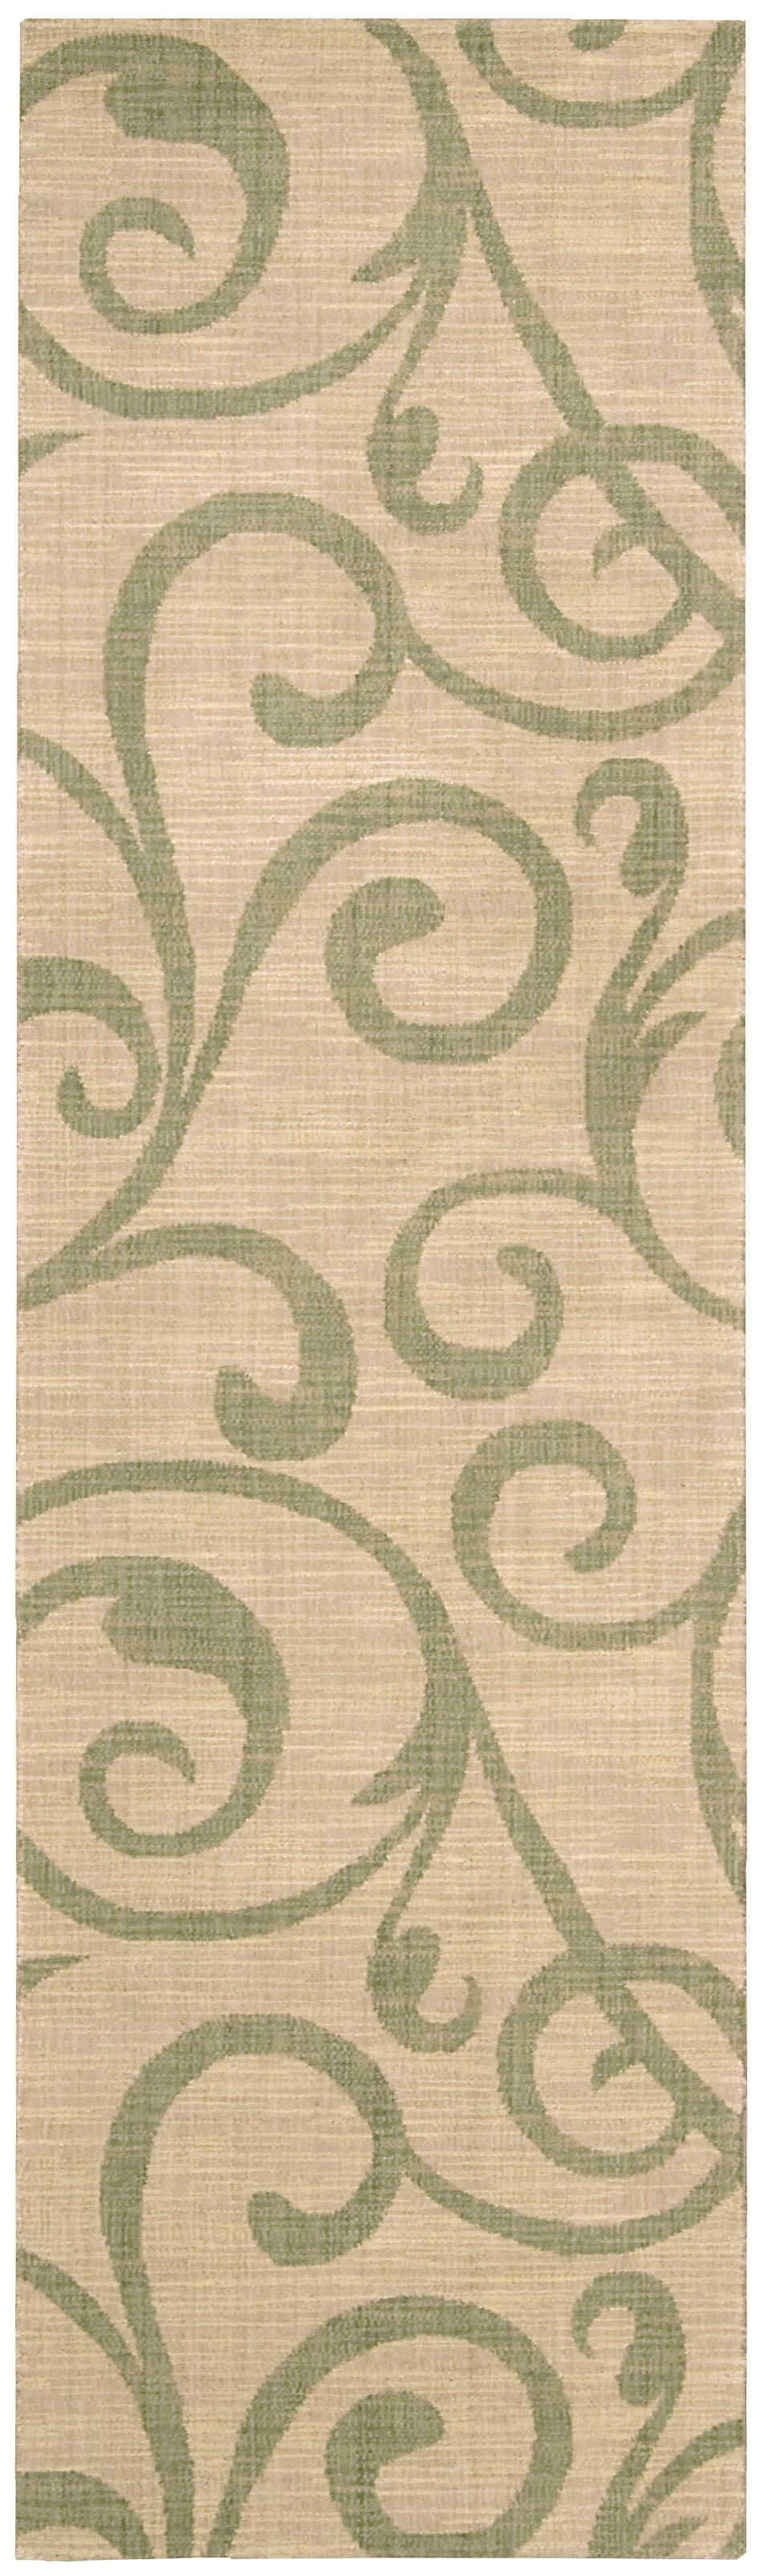 NOURISON RIVIERA LIGHT GOLD AREA RUG